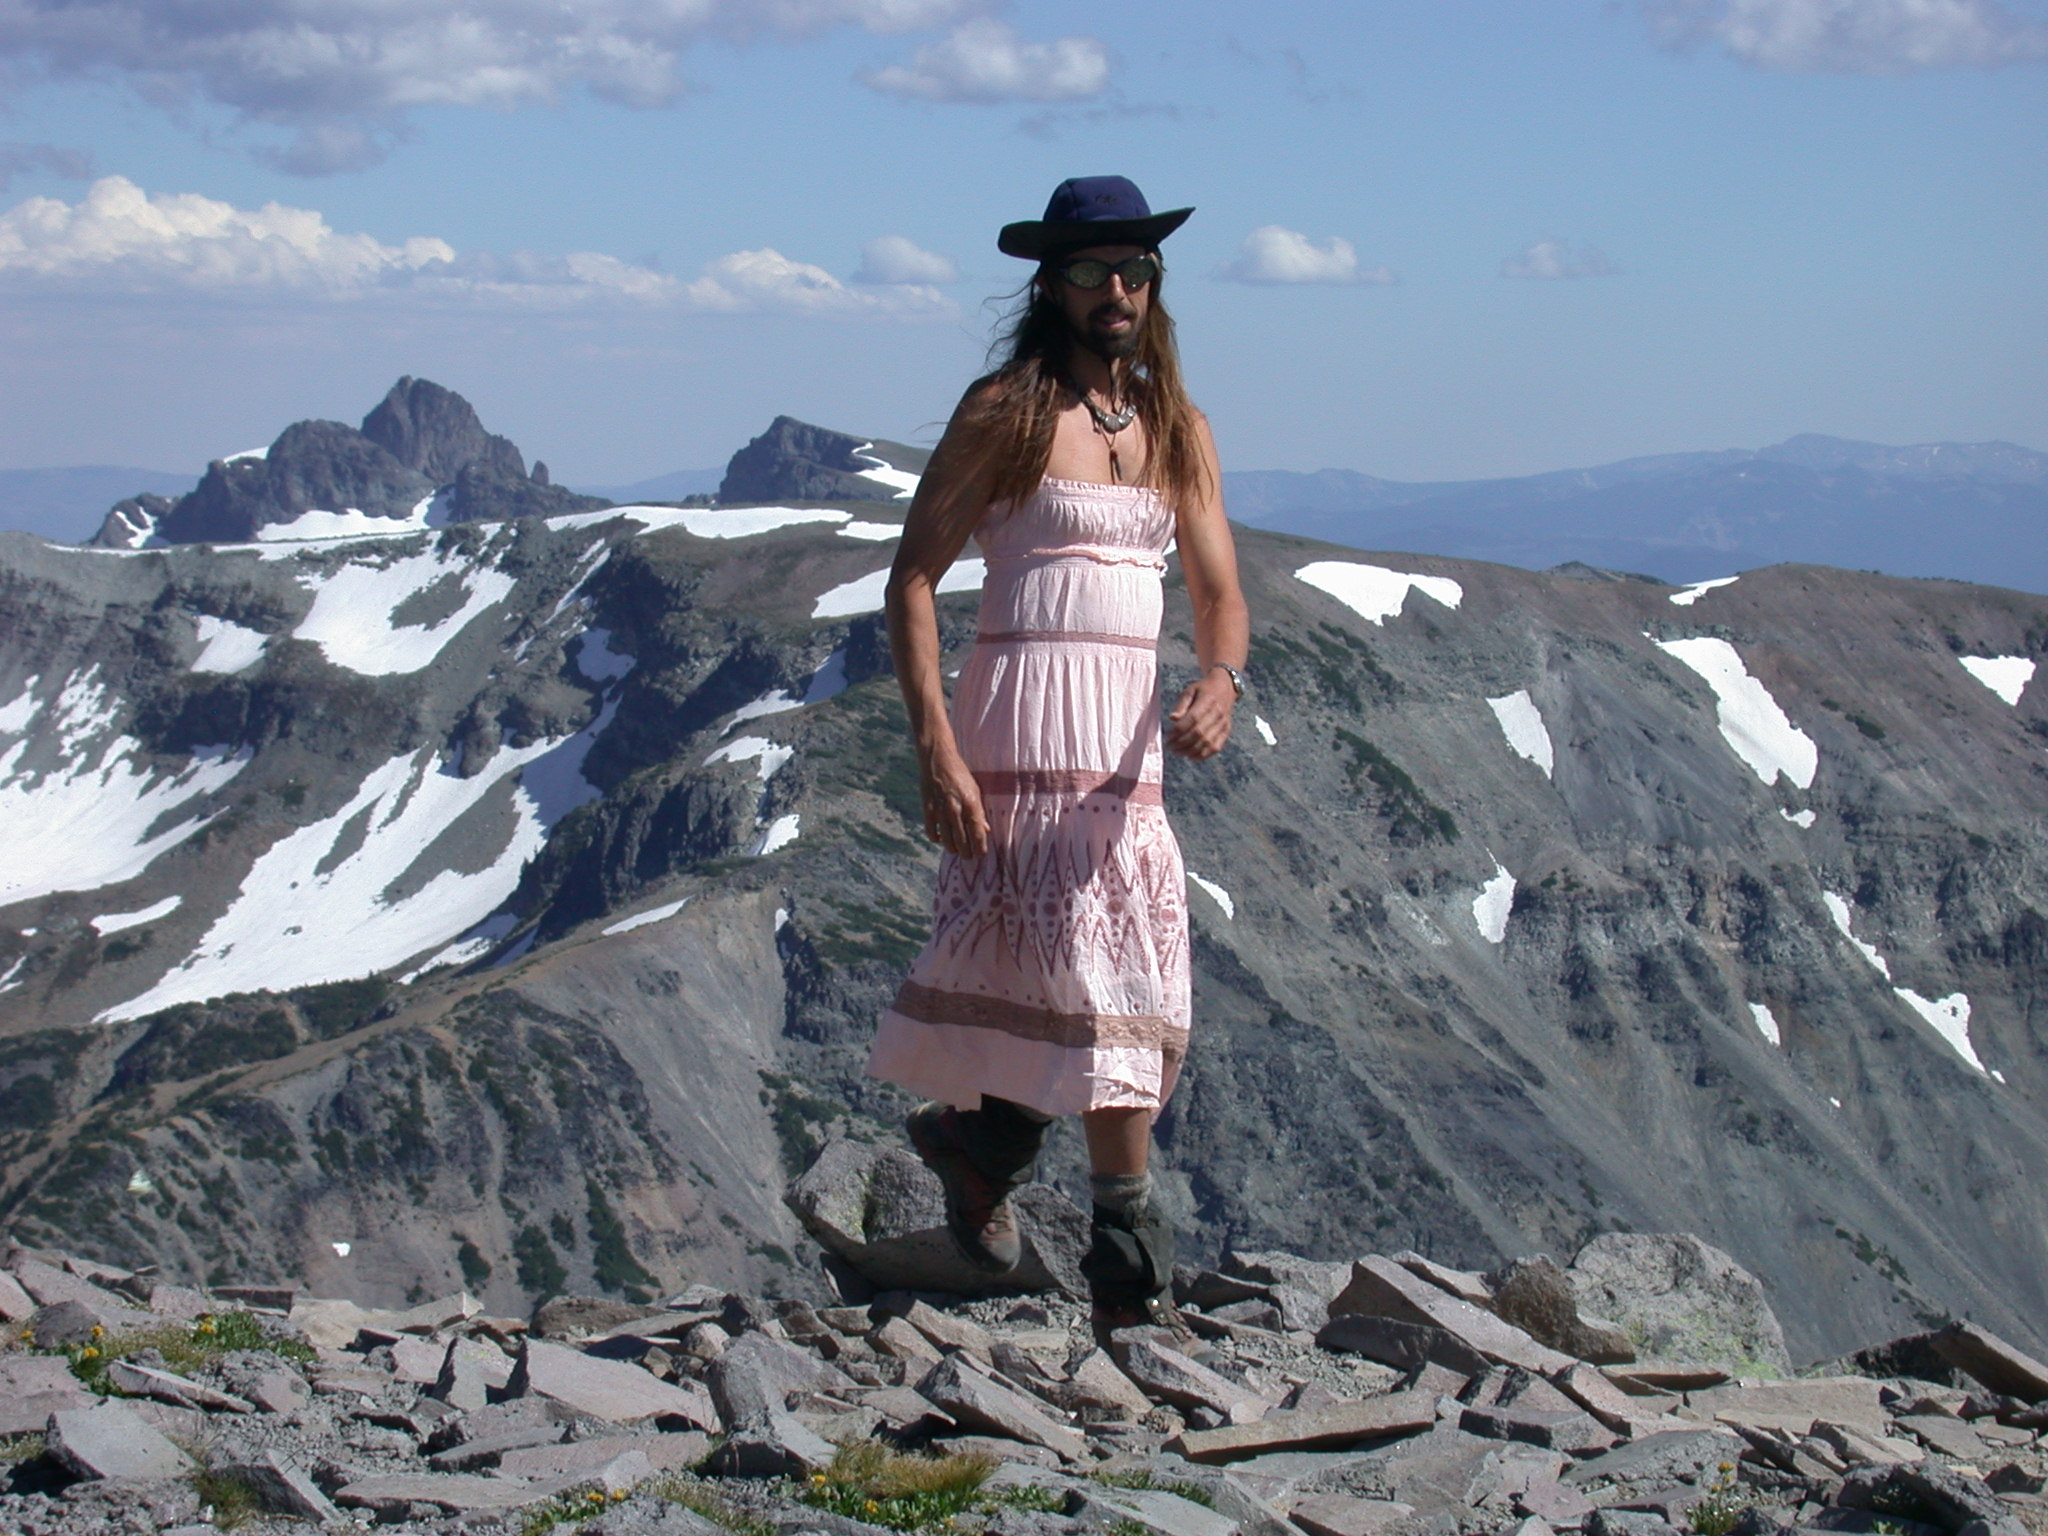 Fruitboy in Dress on Burroughs Peak II of Mount Rainier